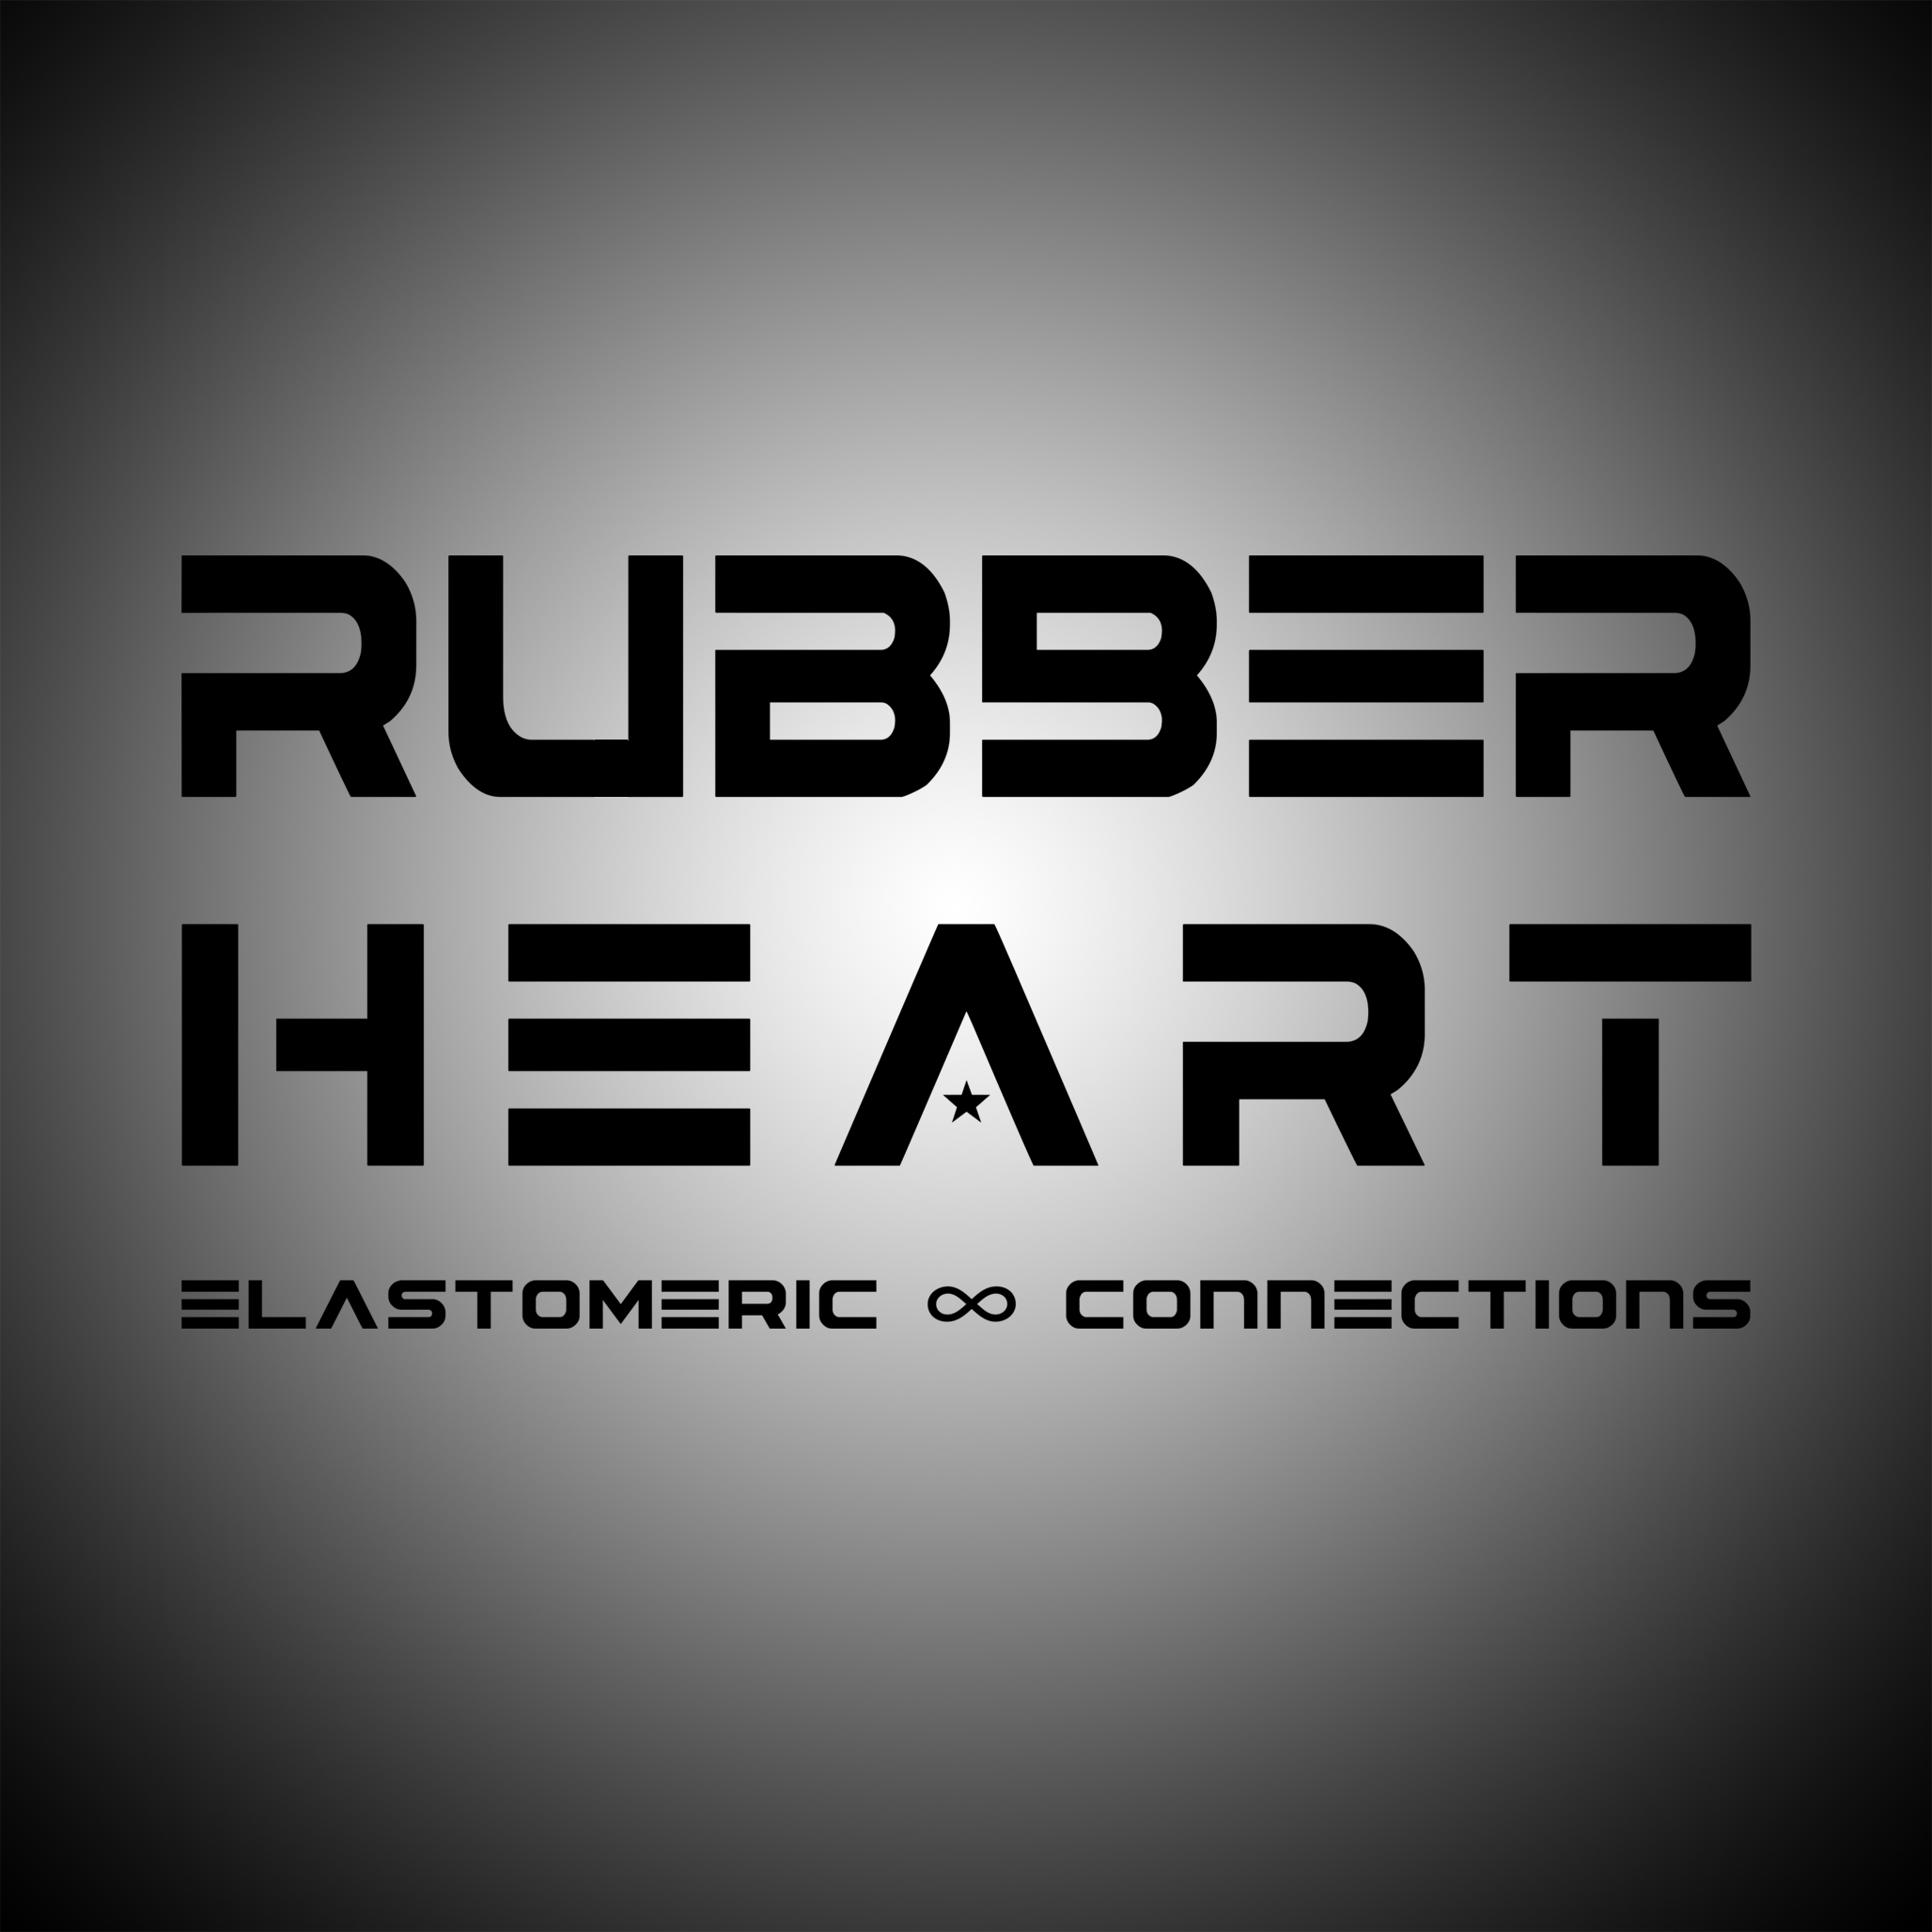 Rubber Heart - Elastomeric Connections